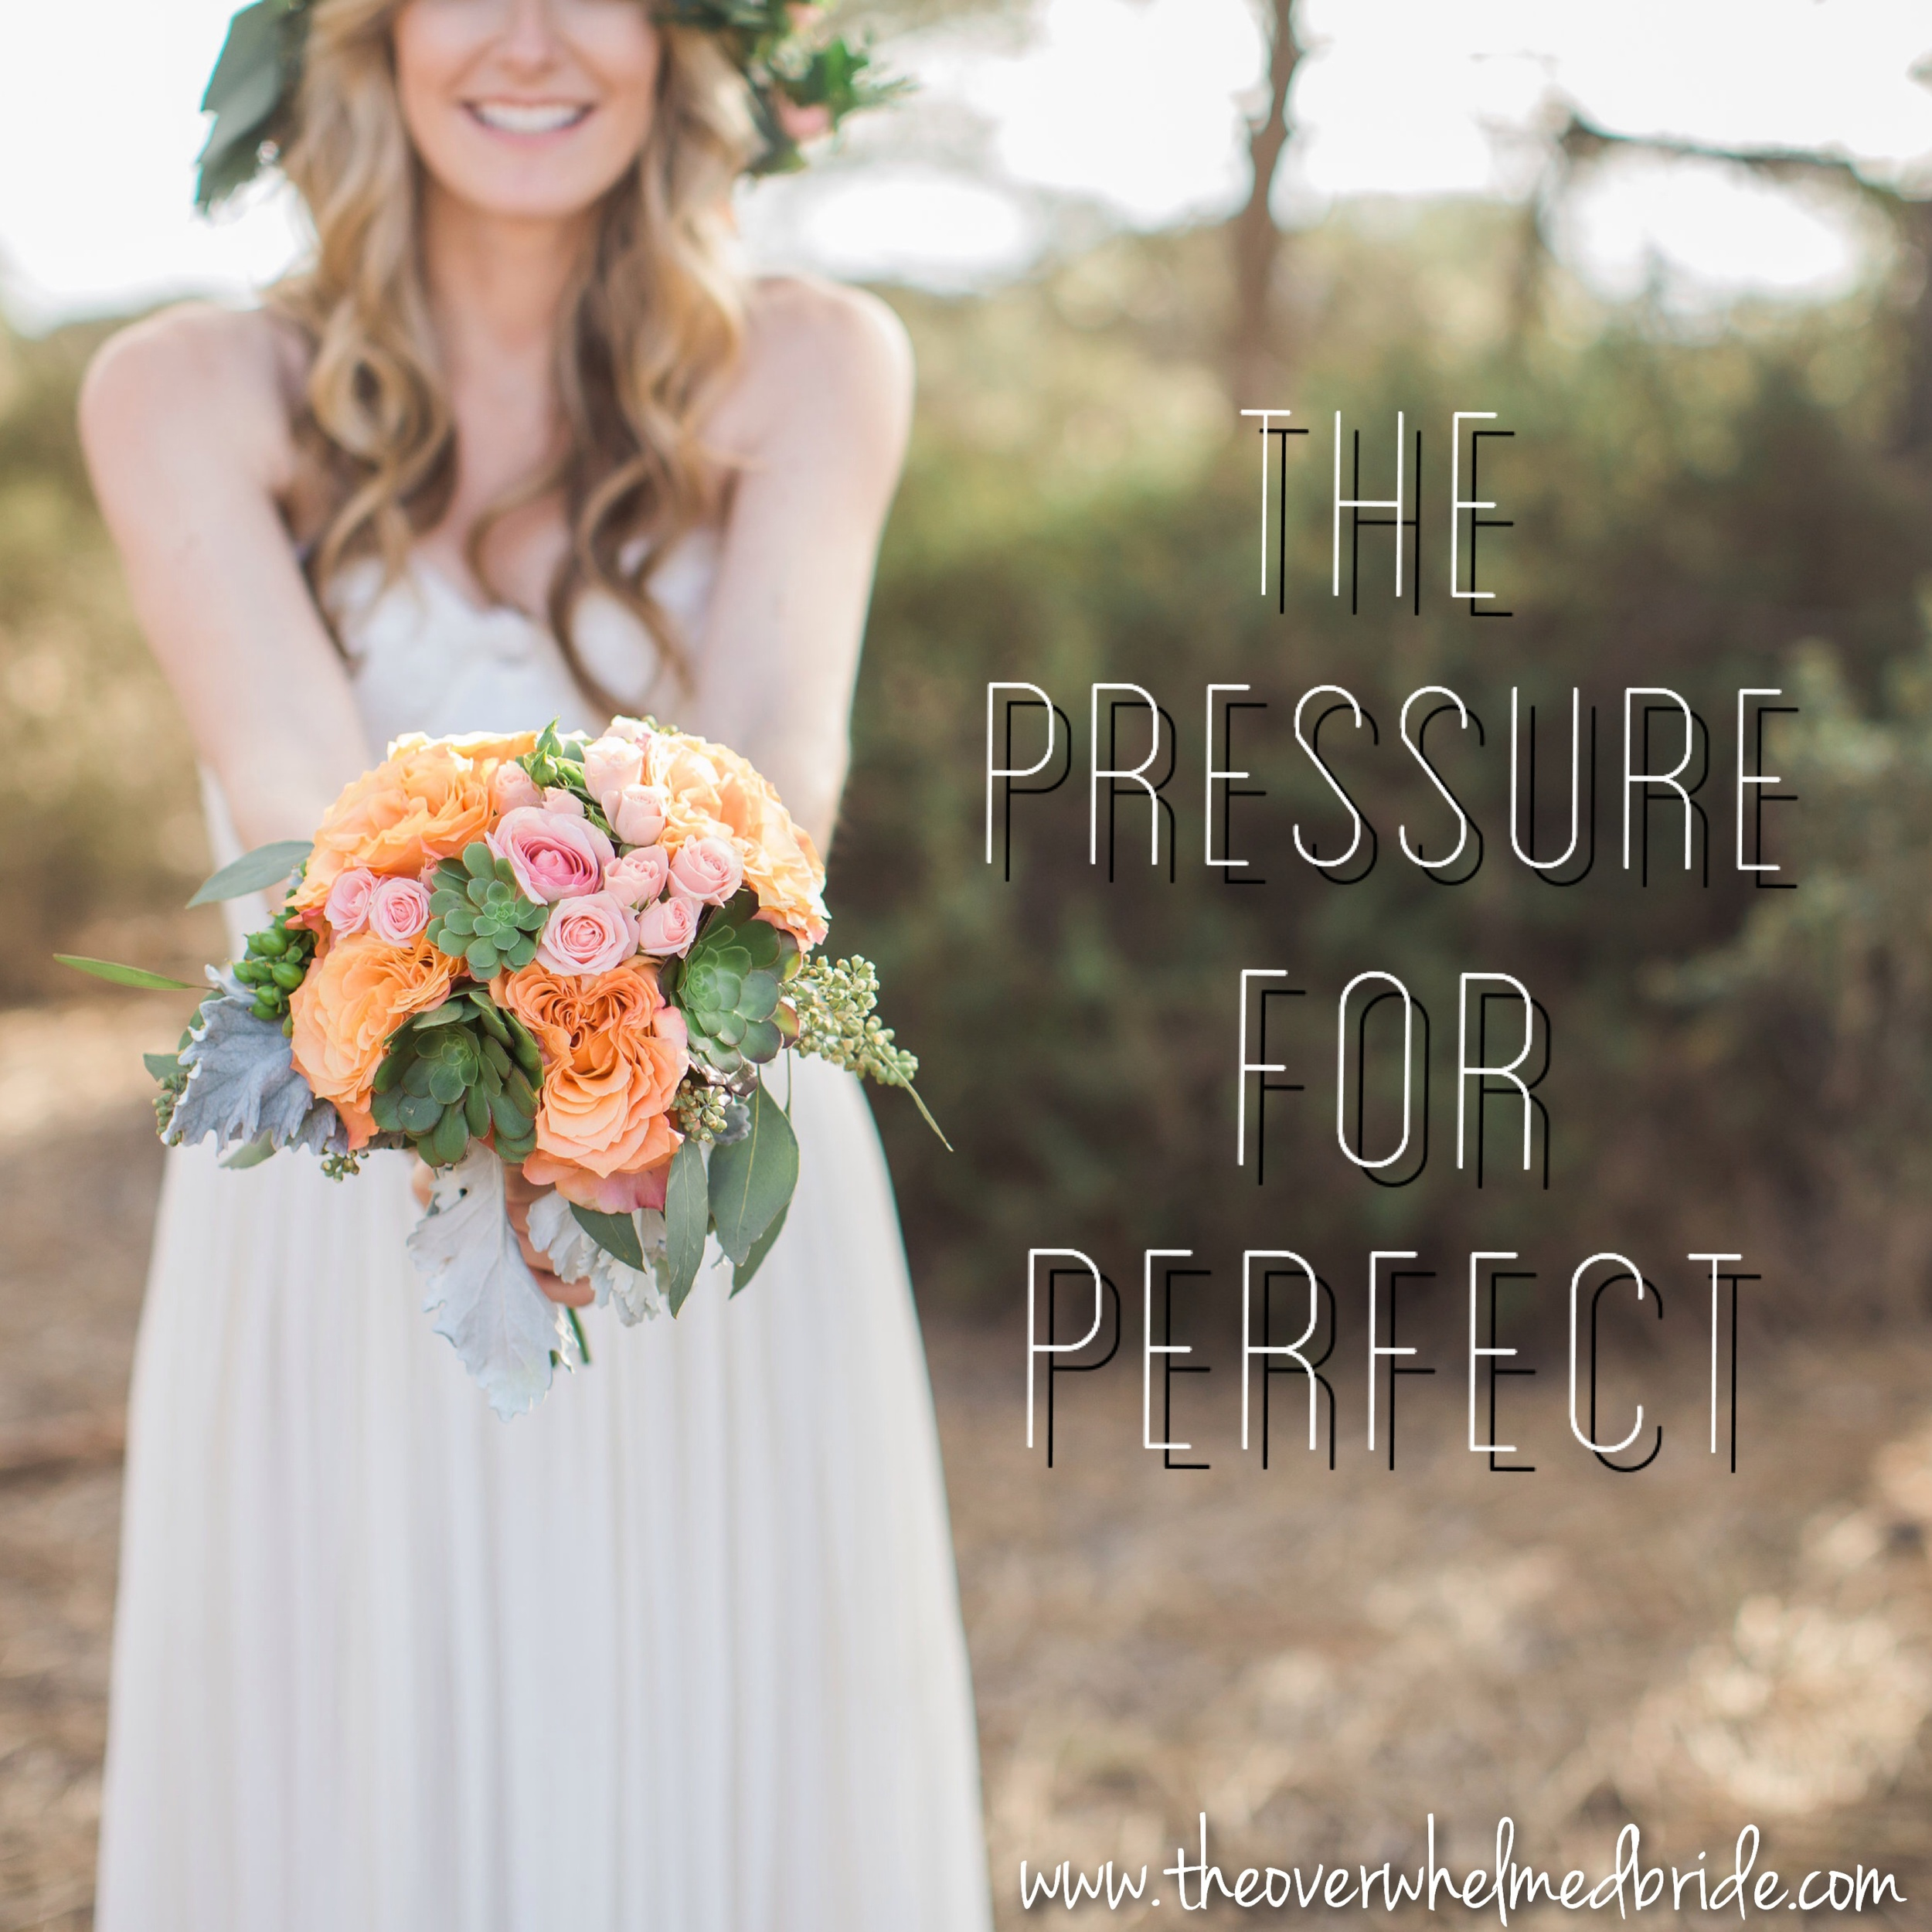 bridal perfection -the pressure for wedding perfection